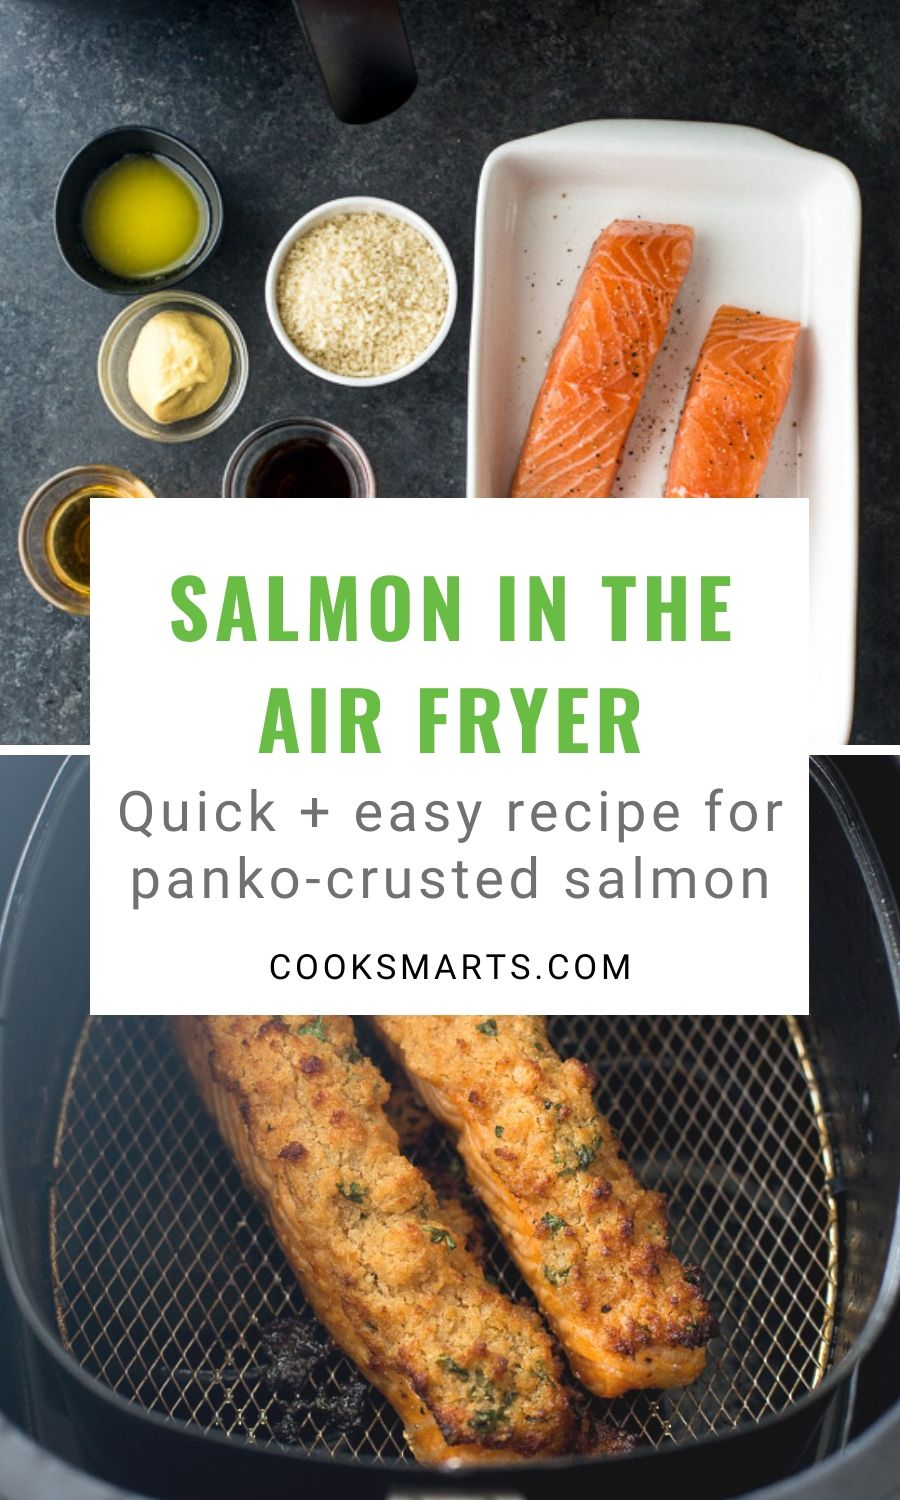 Air Fryer Salmon with Panko Crust Recipe | Cook Smarts